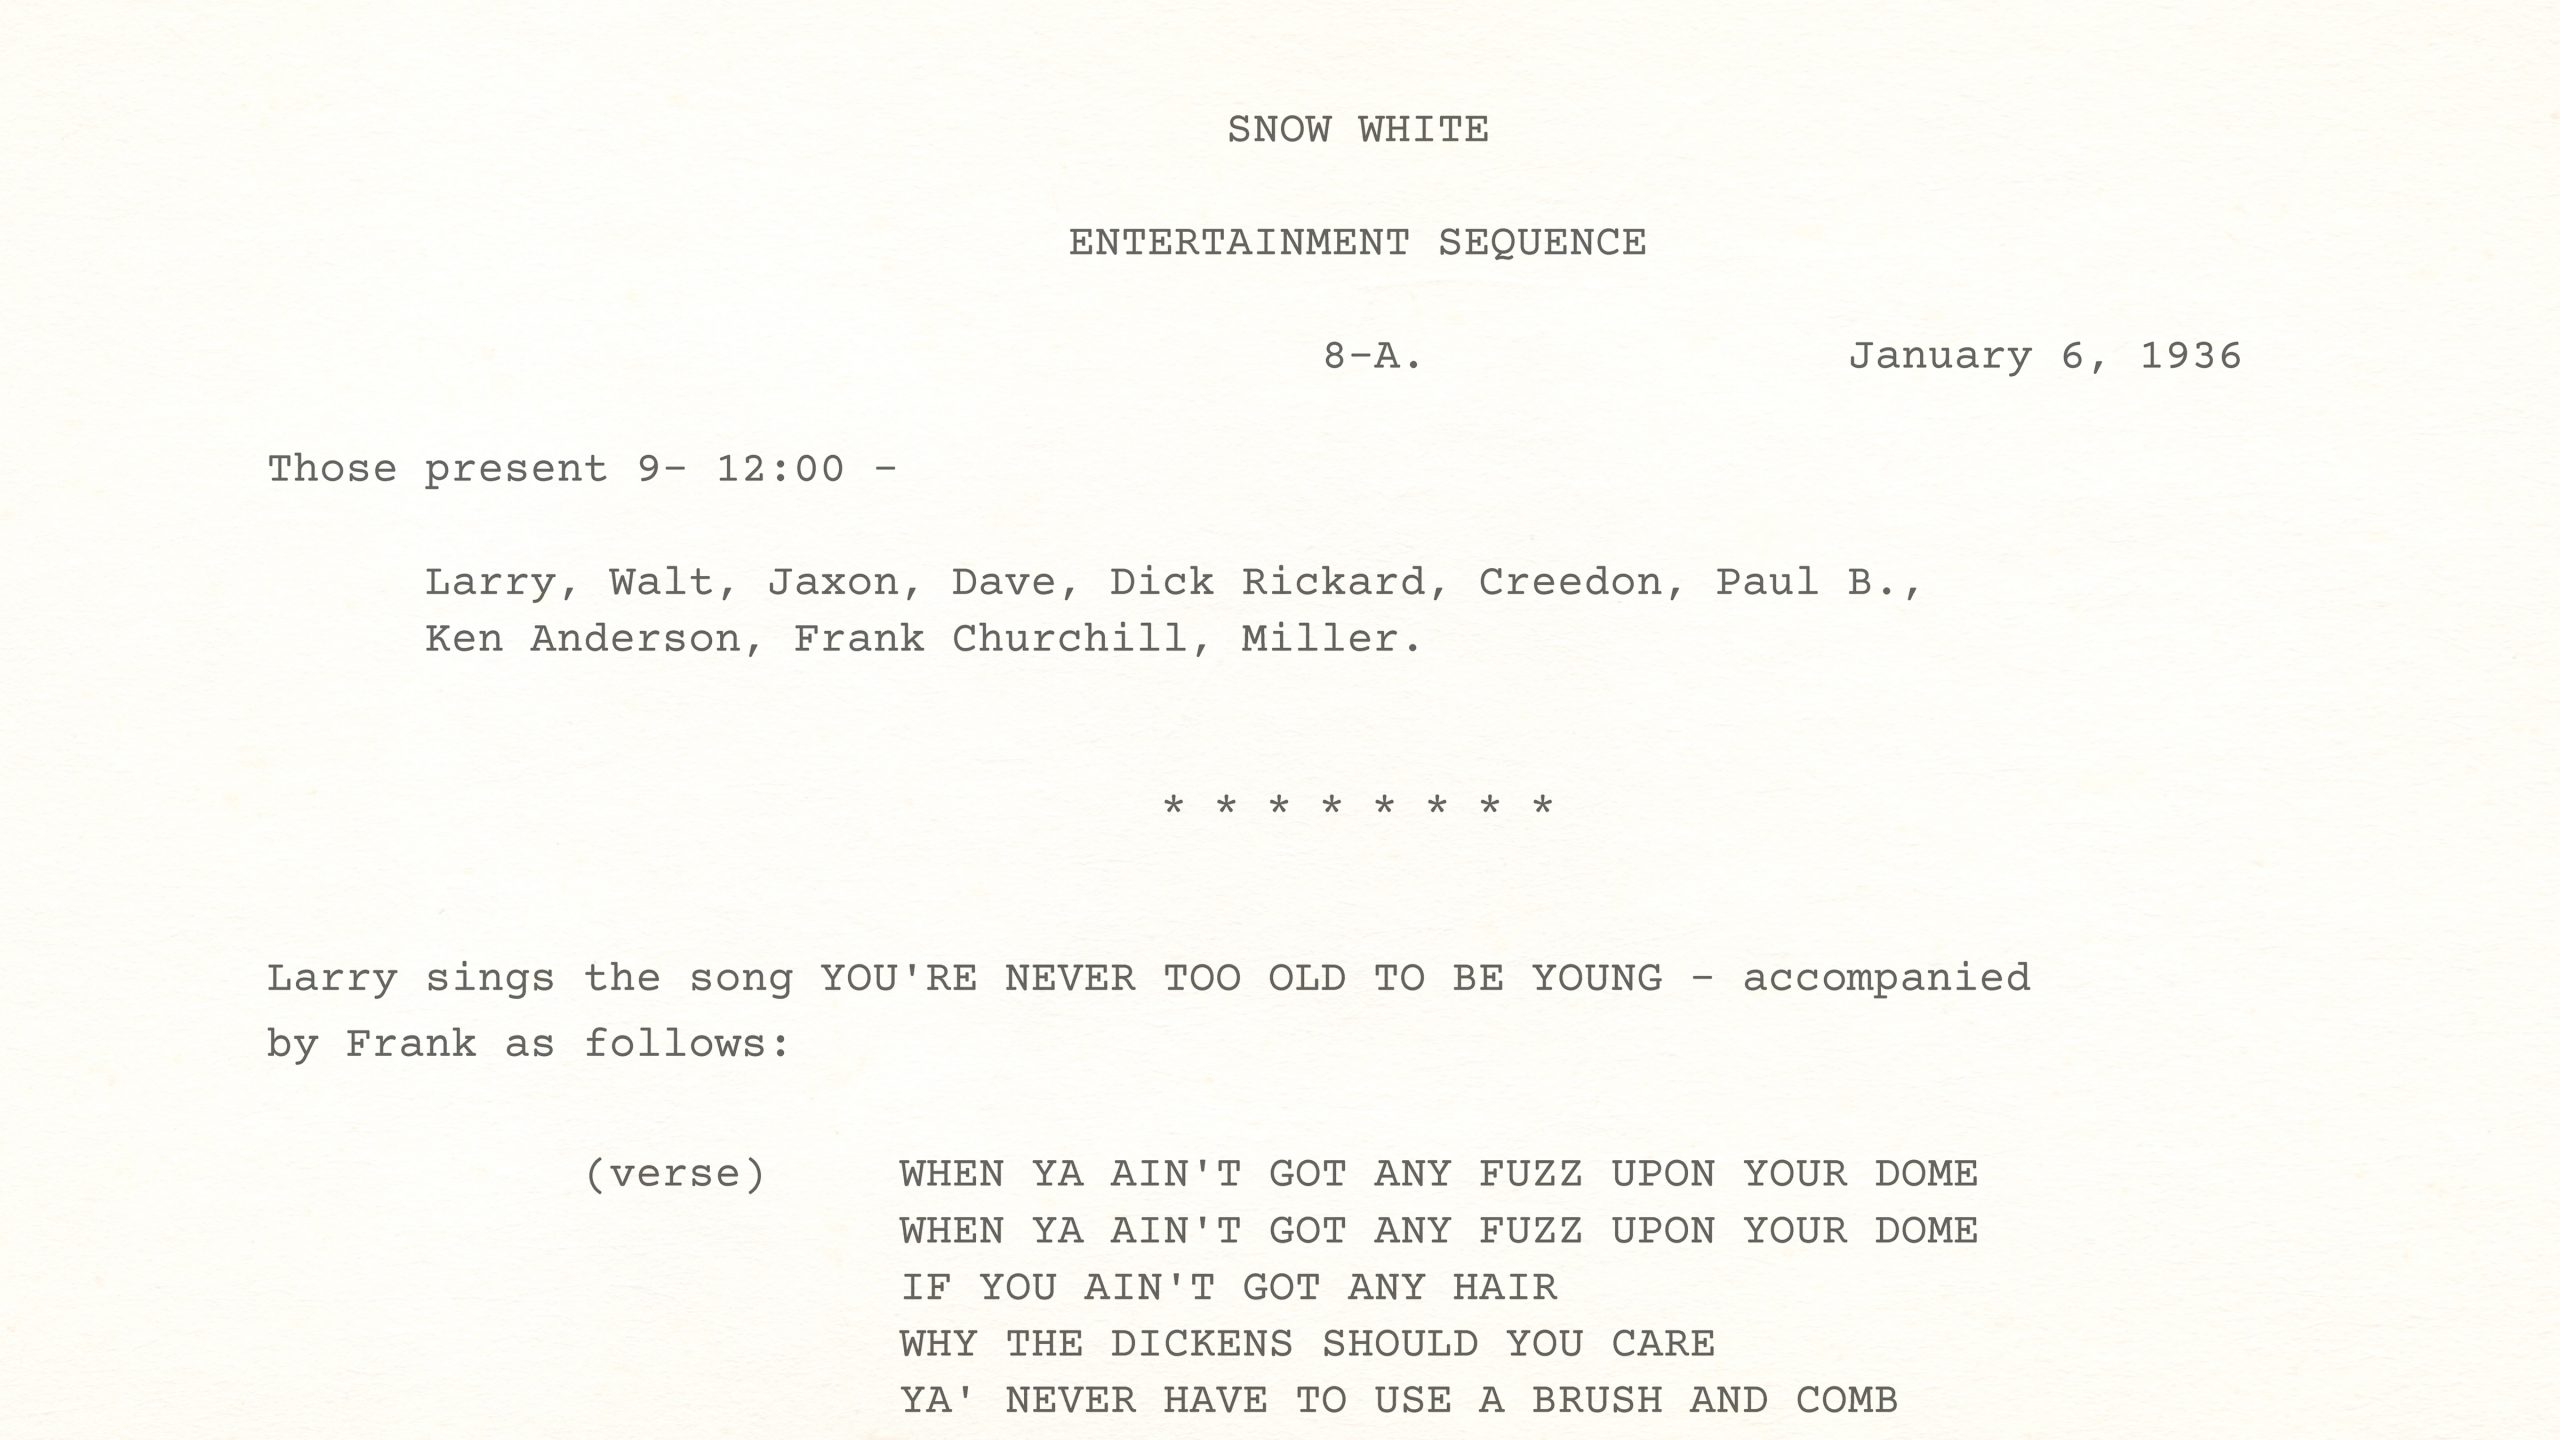 Story Meeting of SNOW WHITE ENTERTAINMENT SEQUENCE, January 6th, 1936, 9:00 a.m. to 12:00 p.m.